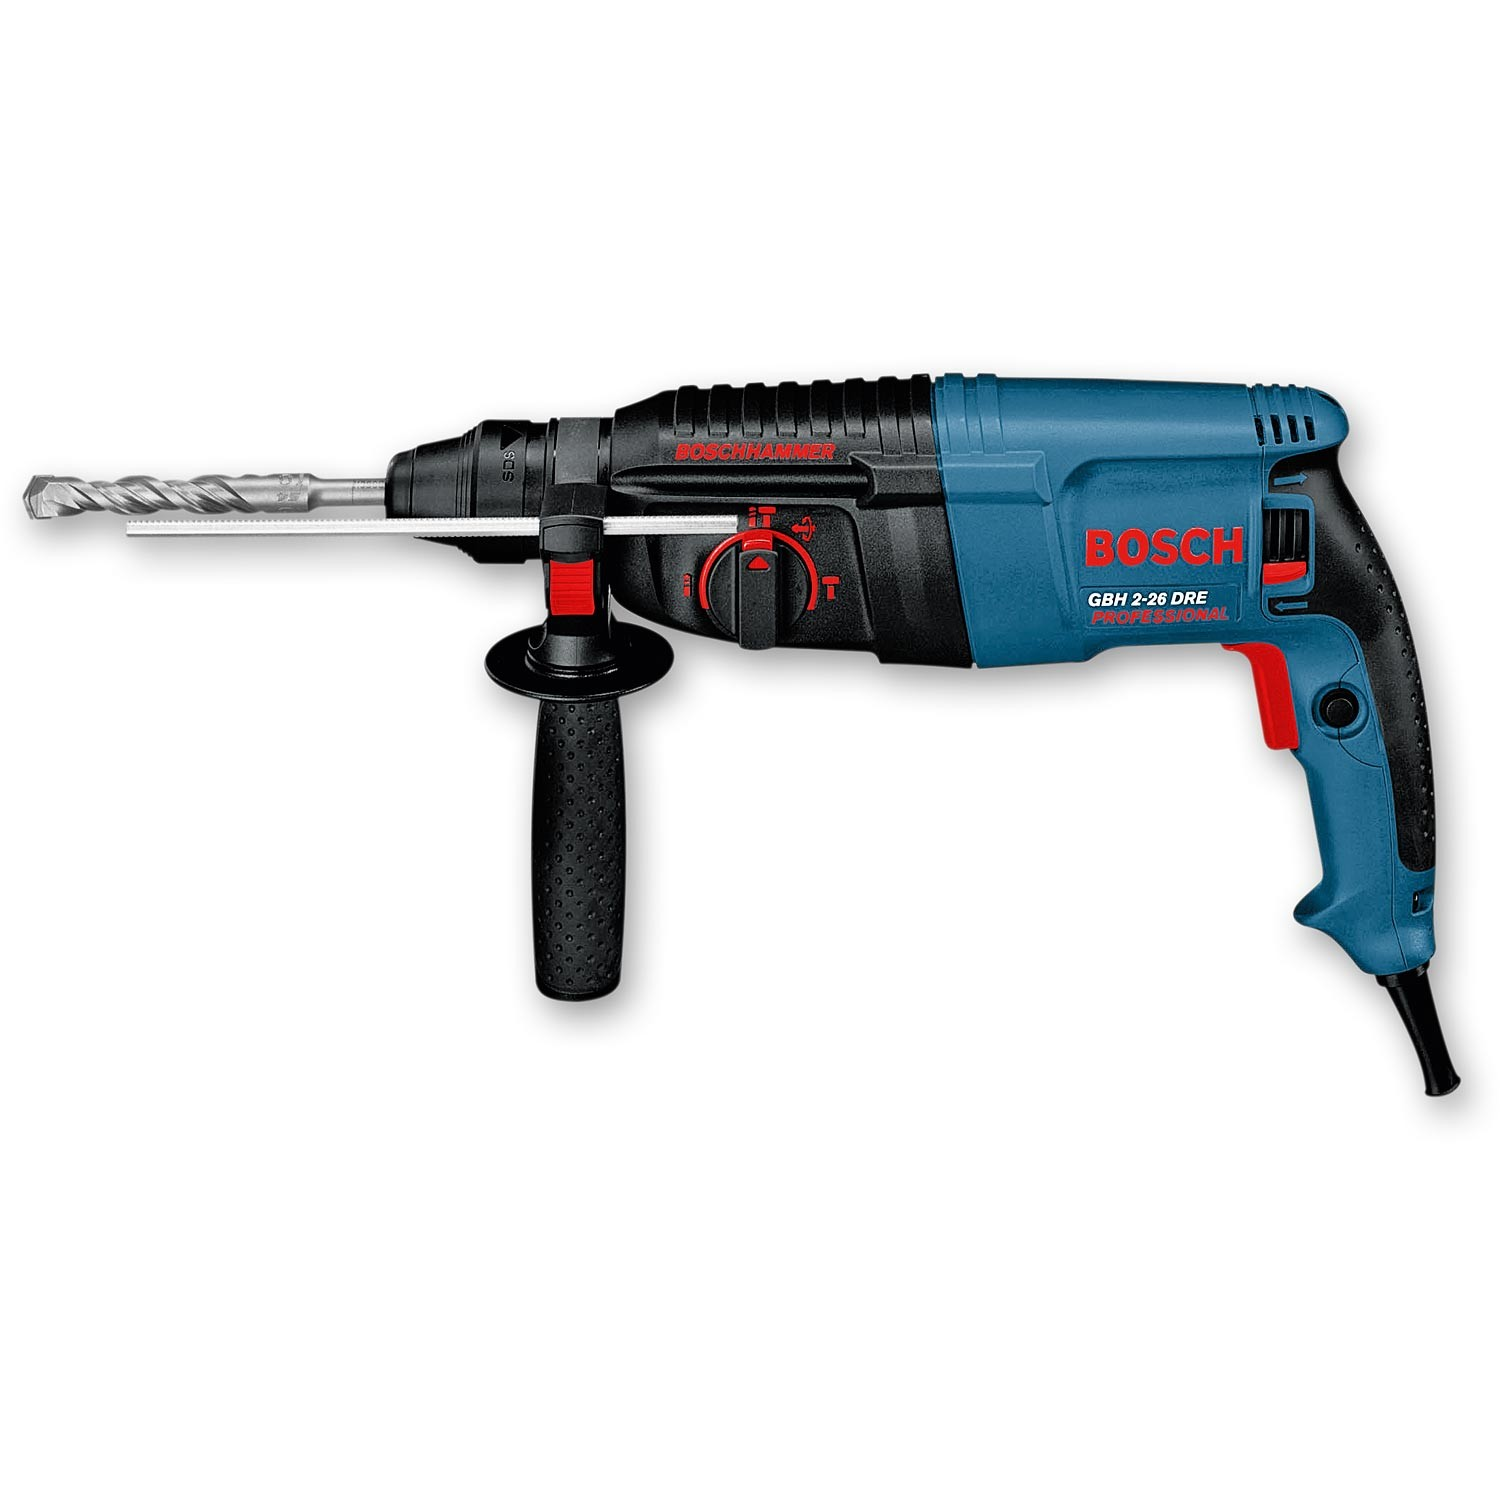 bosch gbh 2 26 dfr rotary hammer end 5 10 2019 3 56 pm. Black Bedroom Furniture Sets. Home Design Ideas